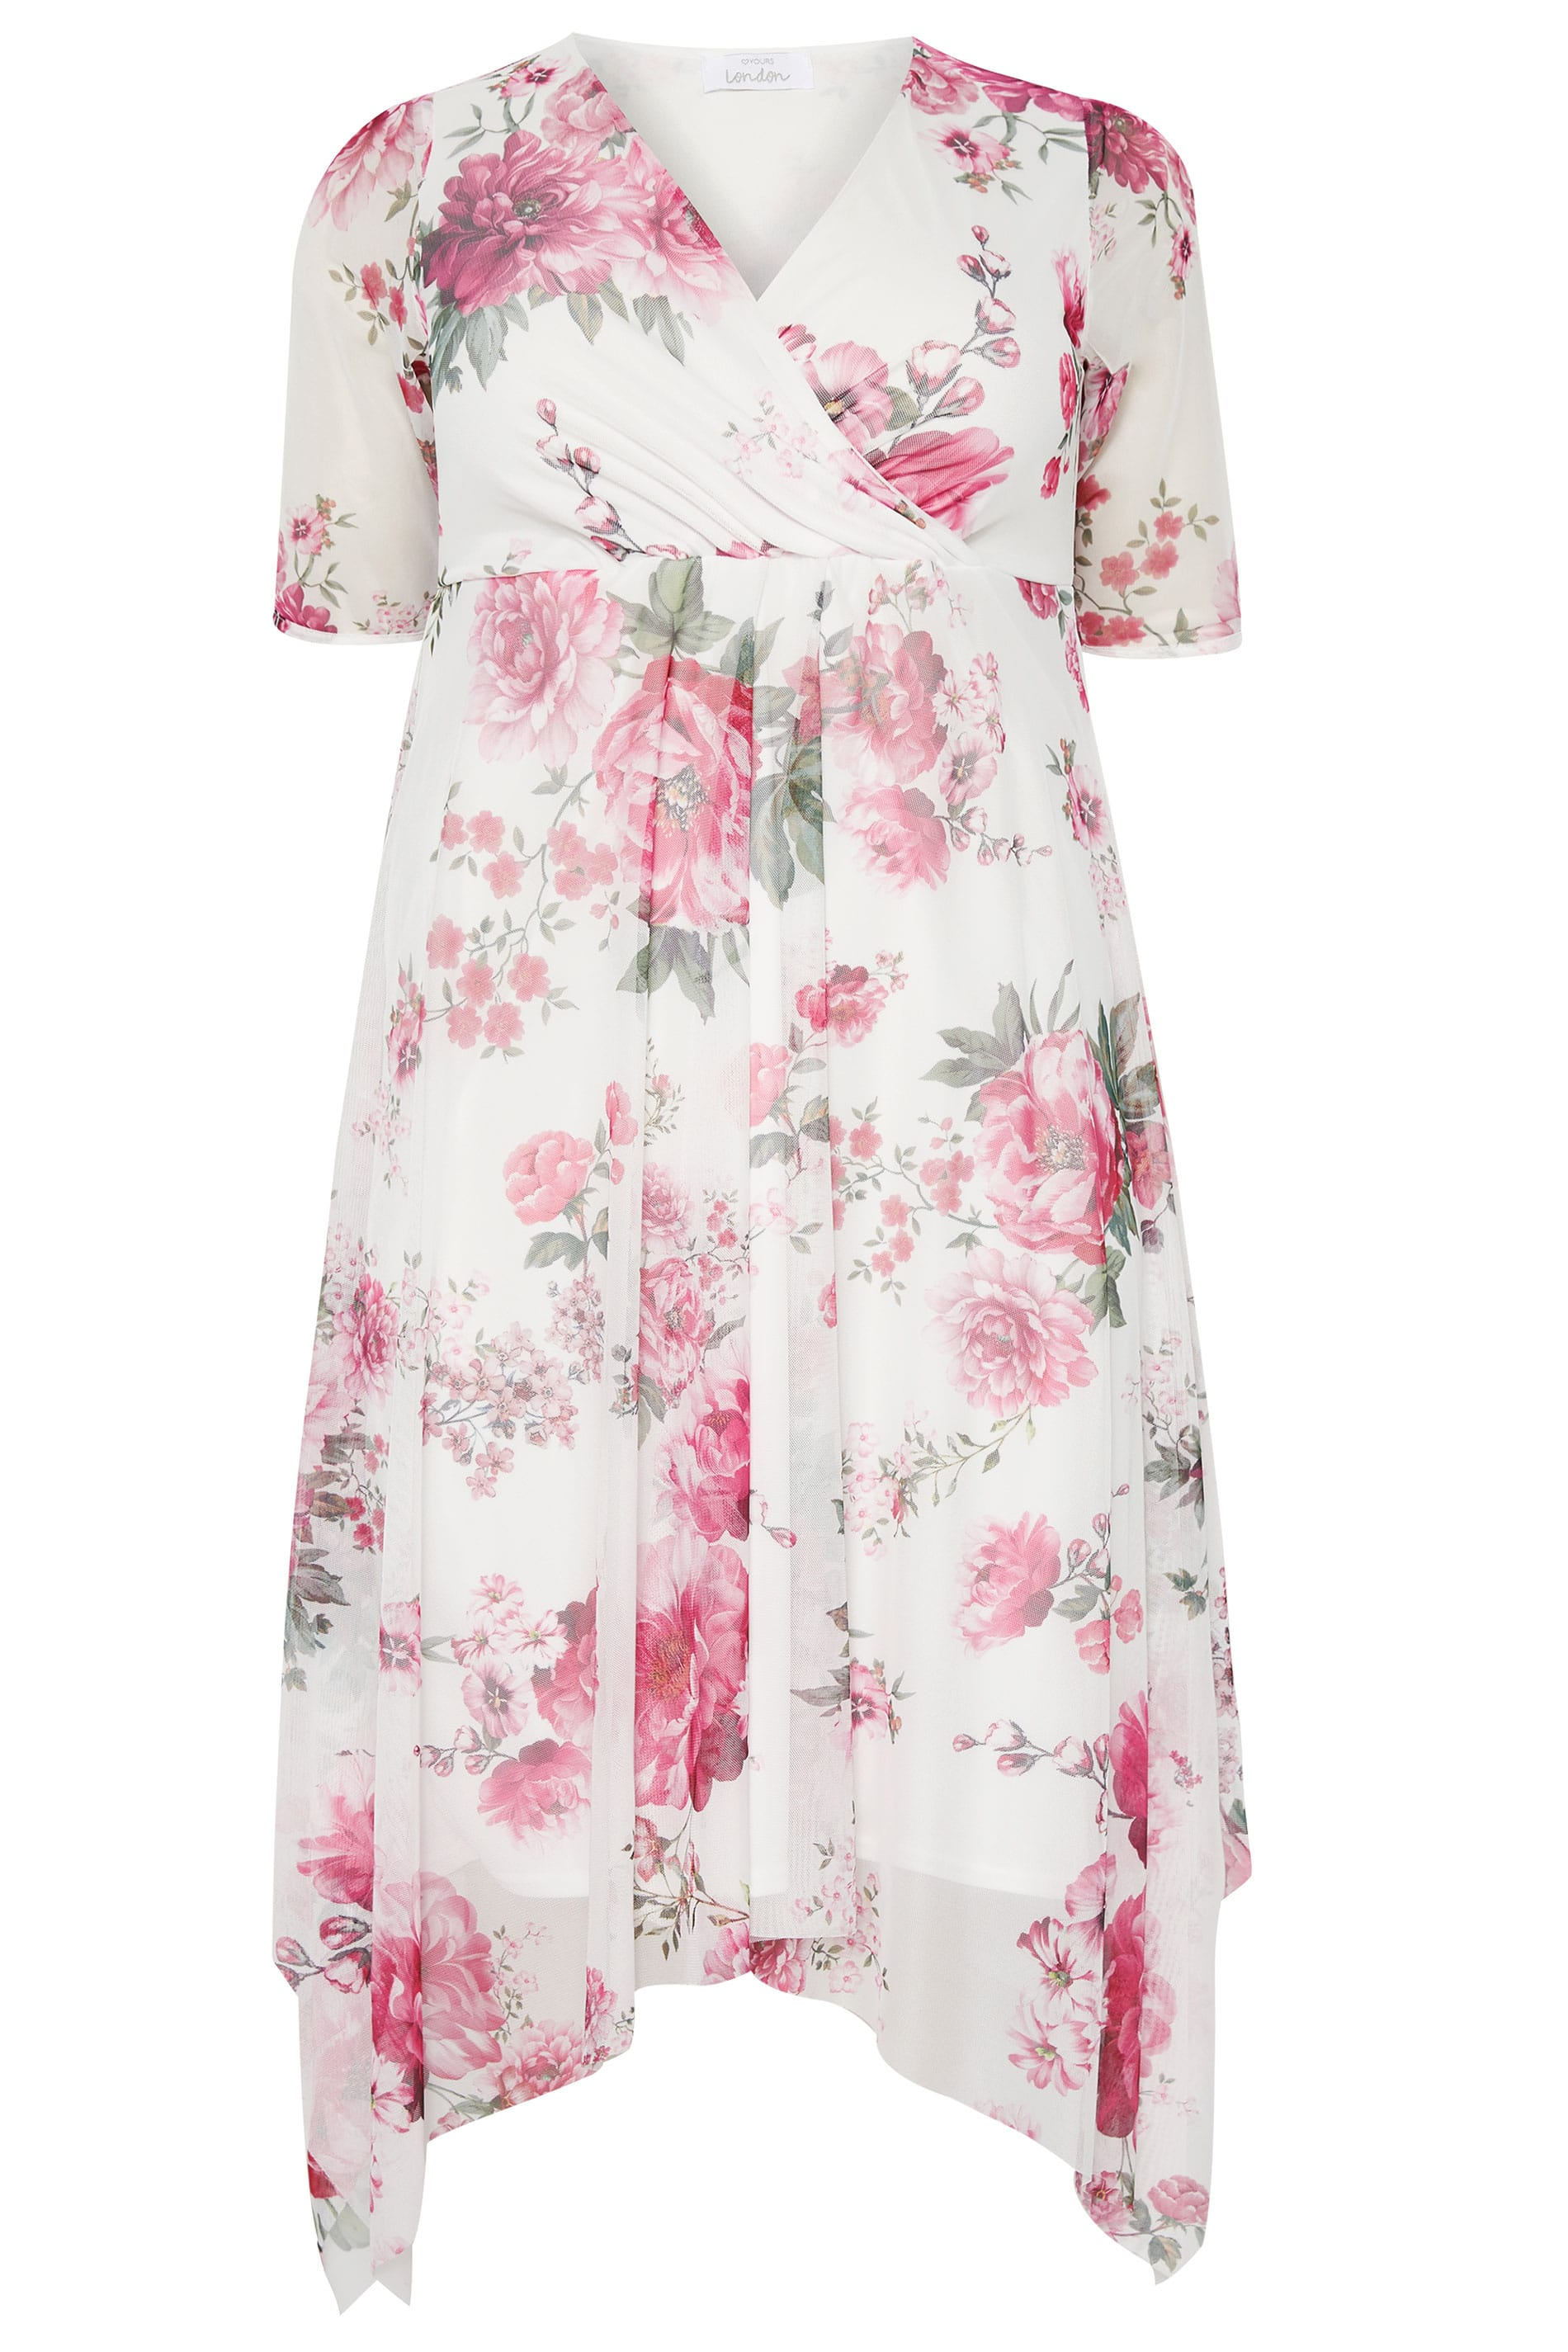 be74af0c196 YOURS LONDON Pink Floral Mesh Midi Dress With Hanky Hem | Sizes 16 ...